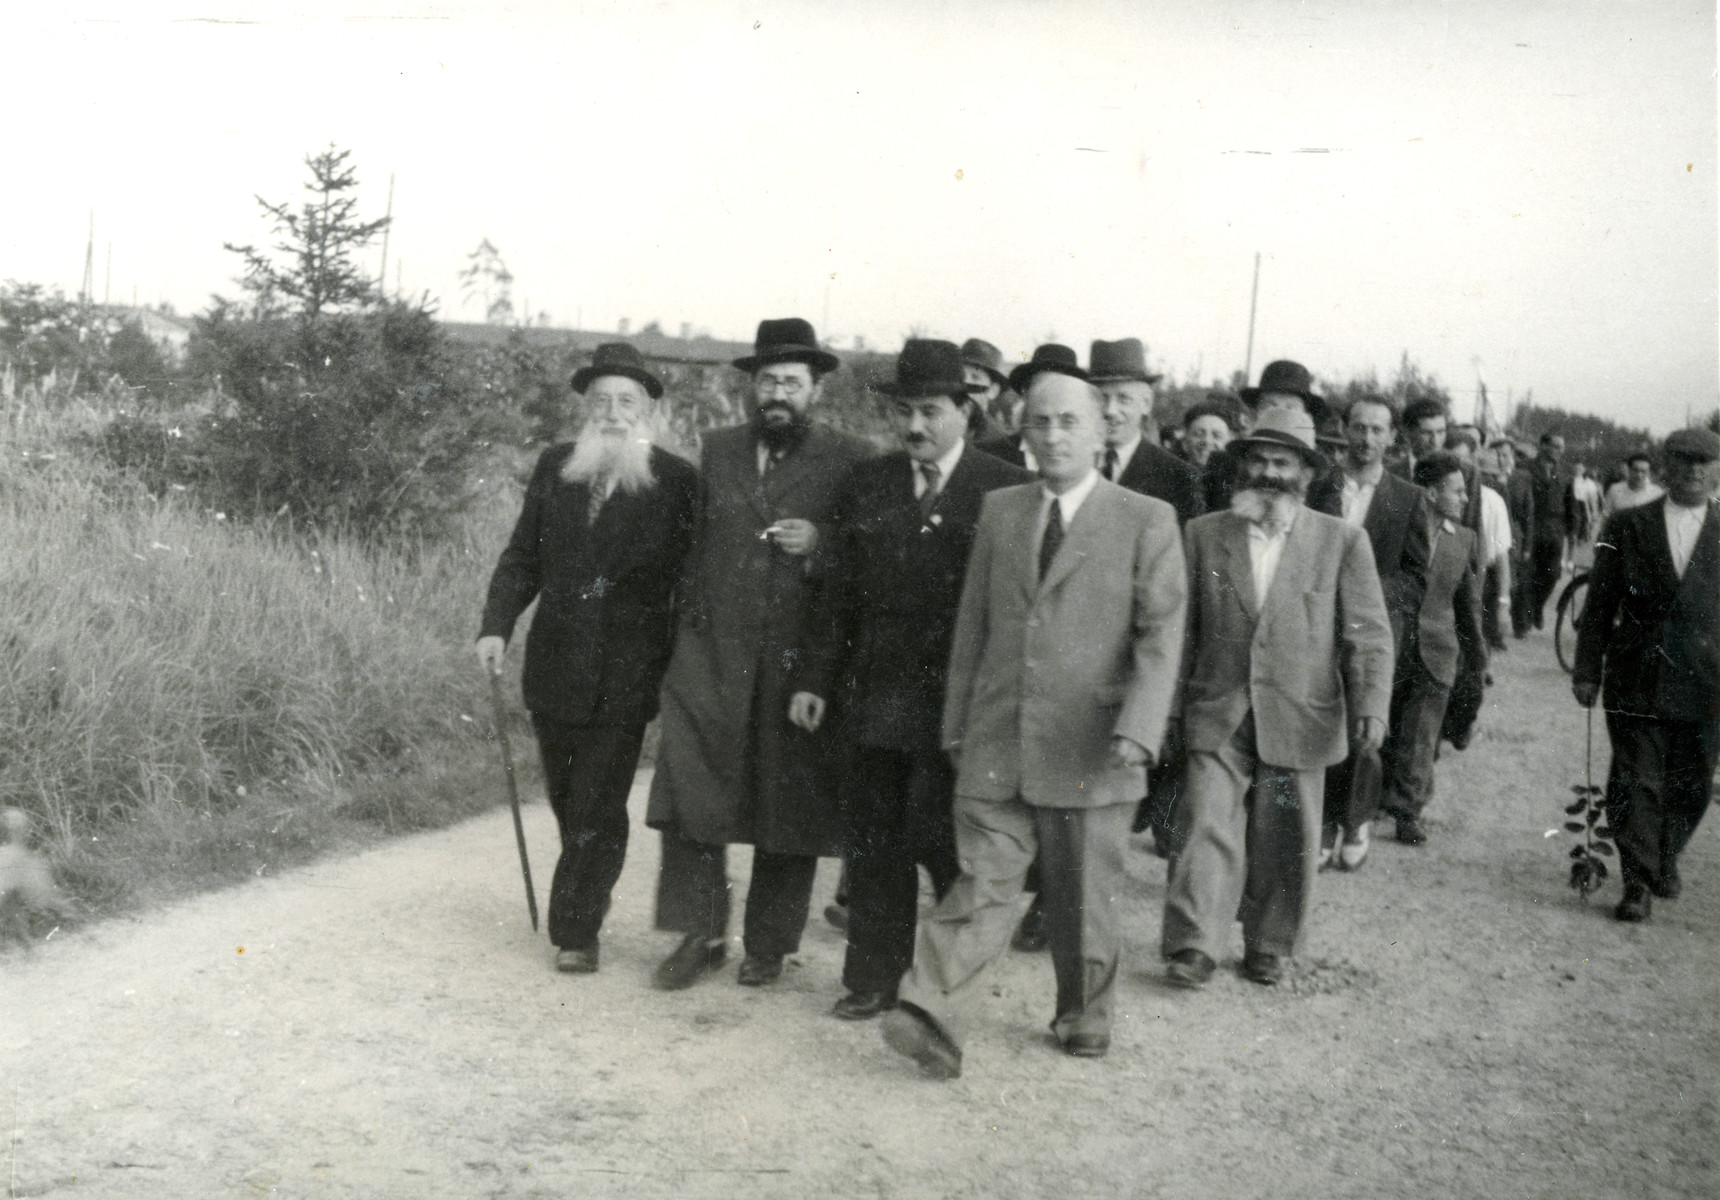 Rabbi Yehuda Lipot Meisels (front row, second from right) leads a procession to the dedication of a monument to the victims of the Pocking concentration camp.